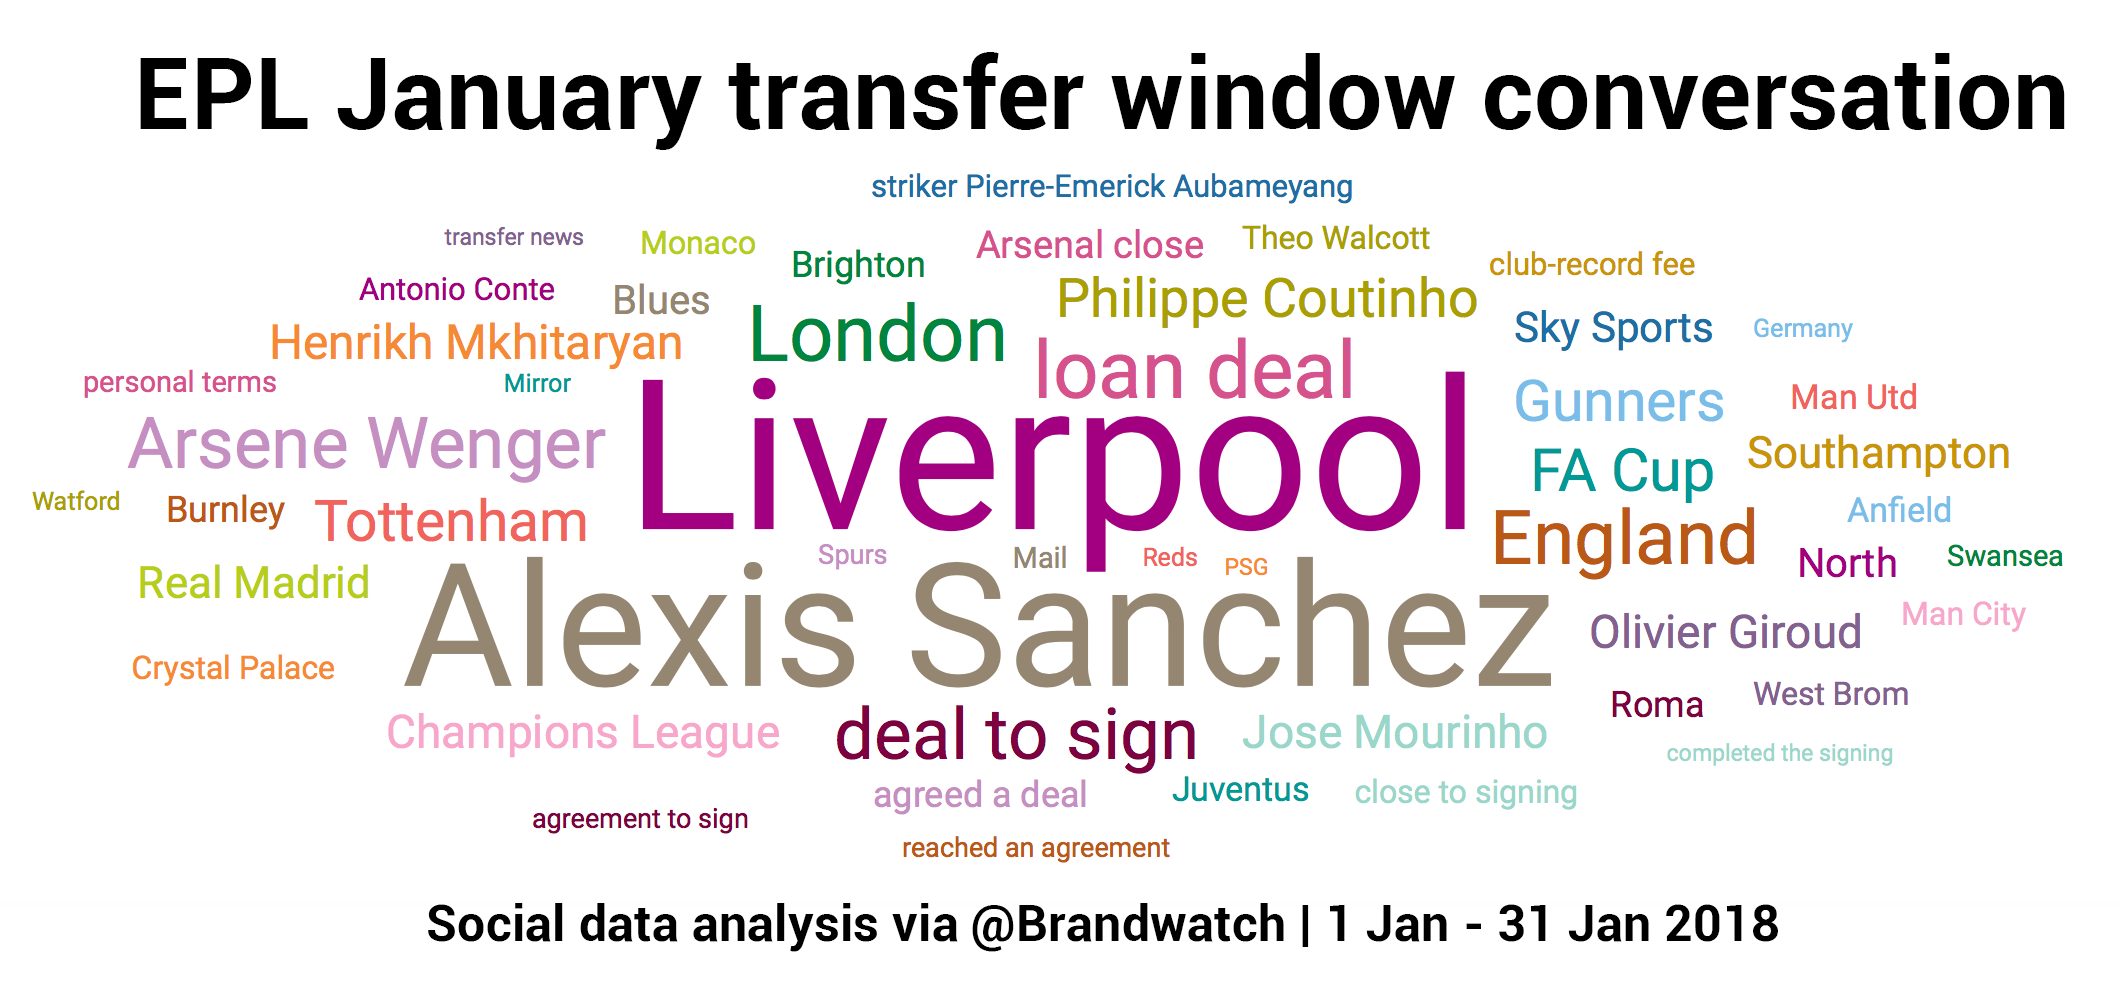 Topic cloud shows top terms surrounding transfer window on social media